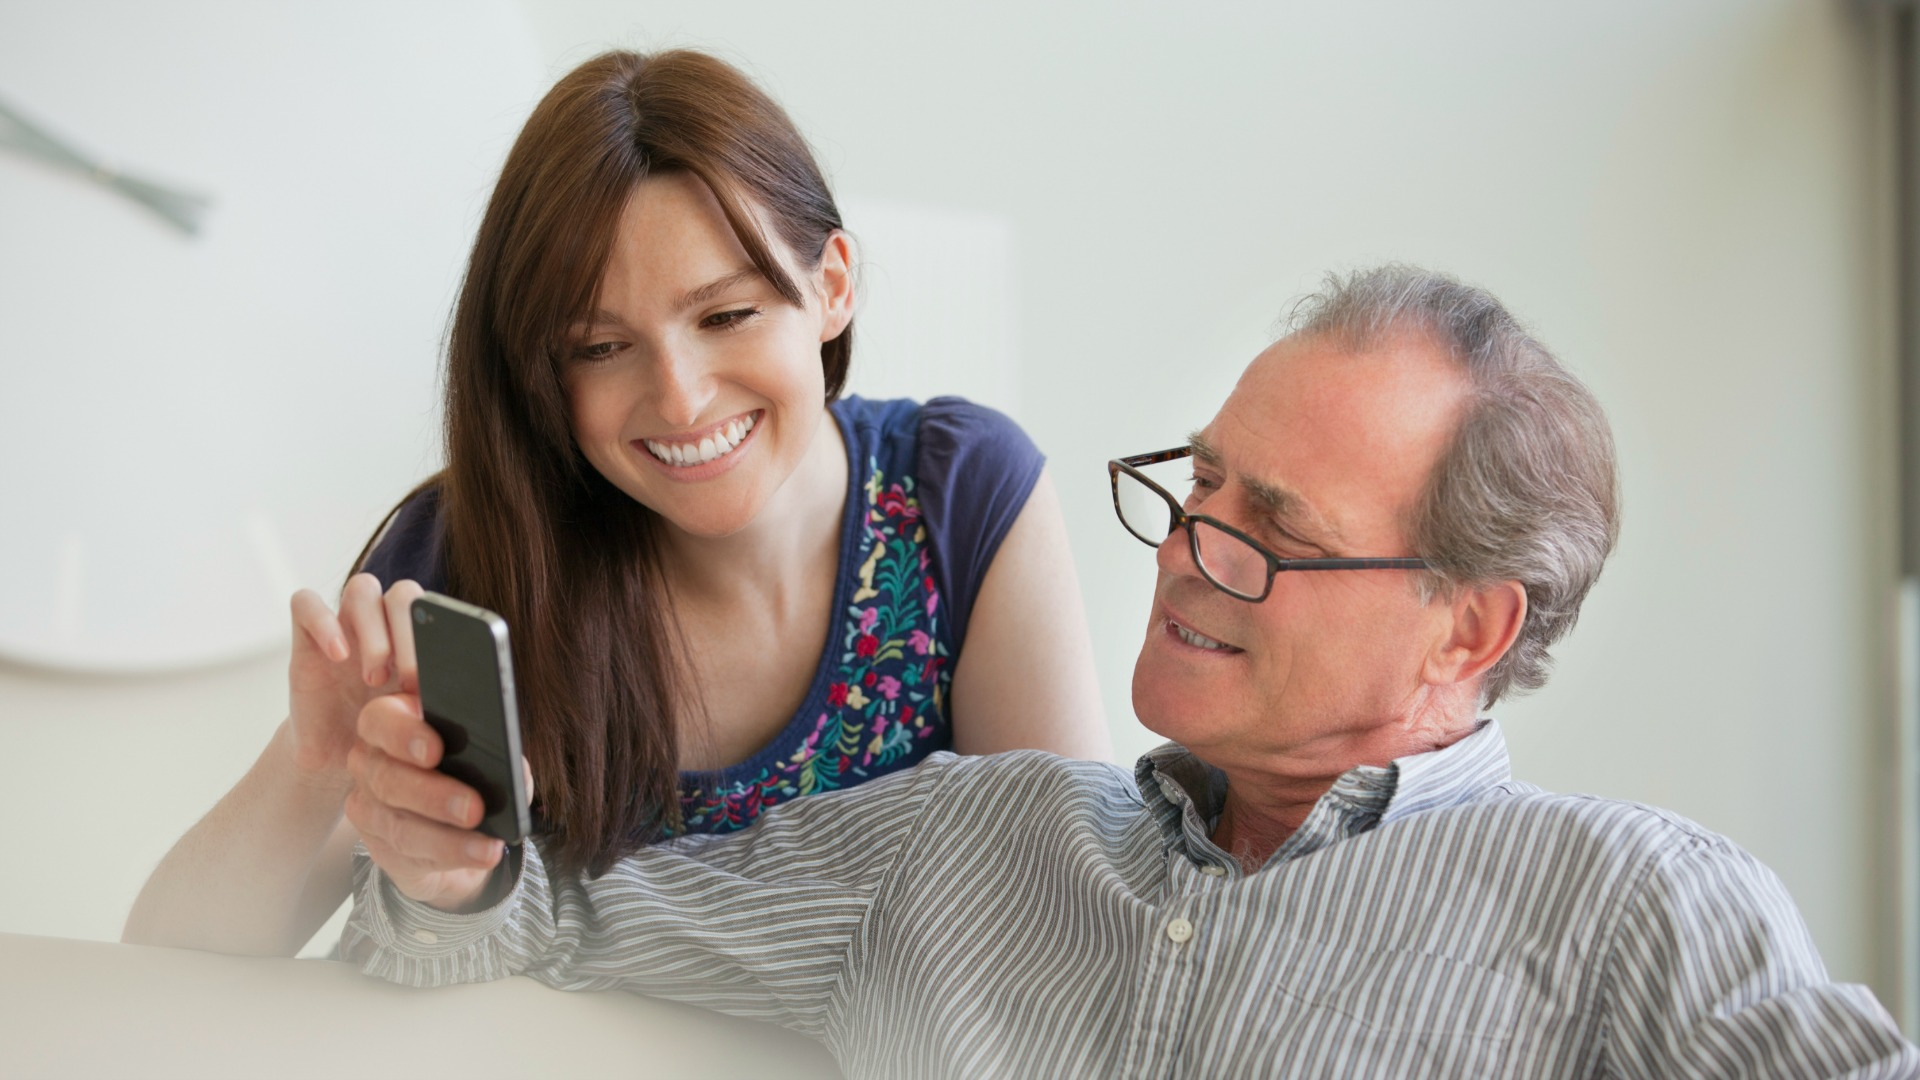 father and daughter look at smartphone together